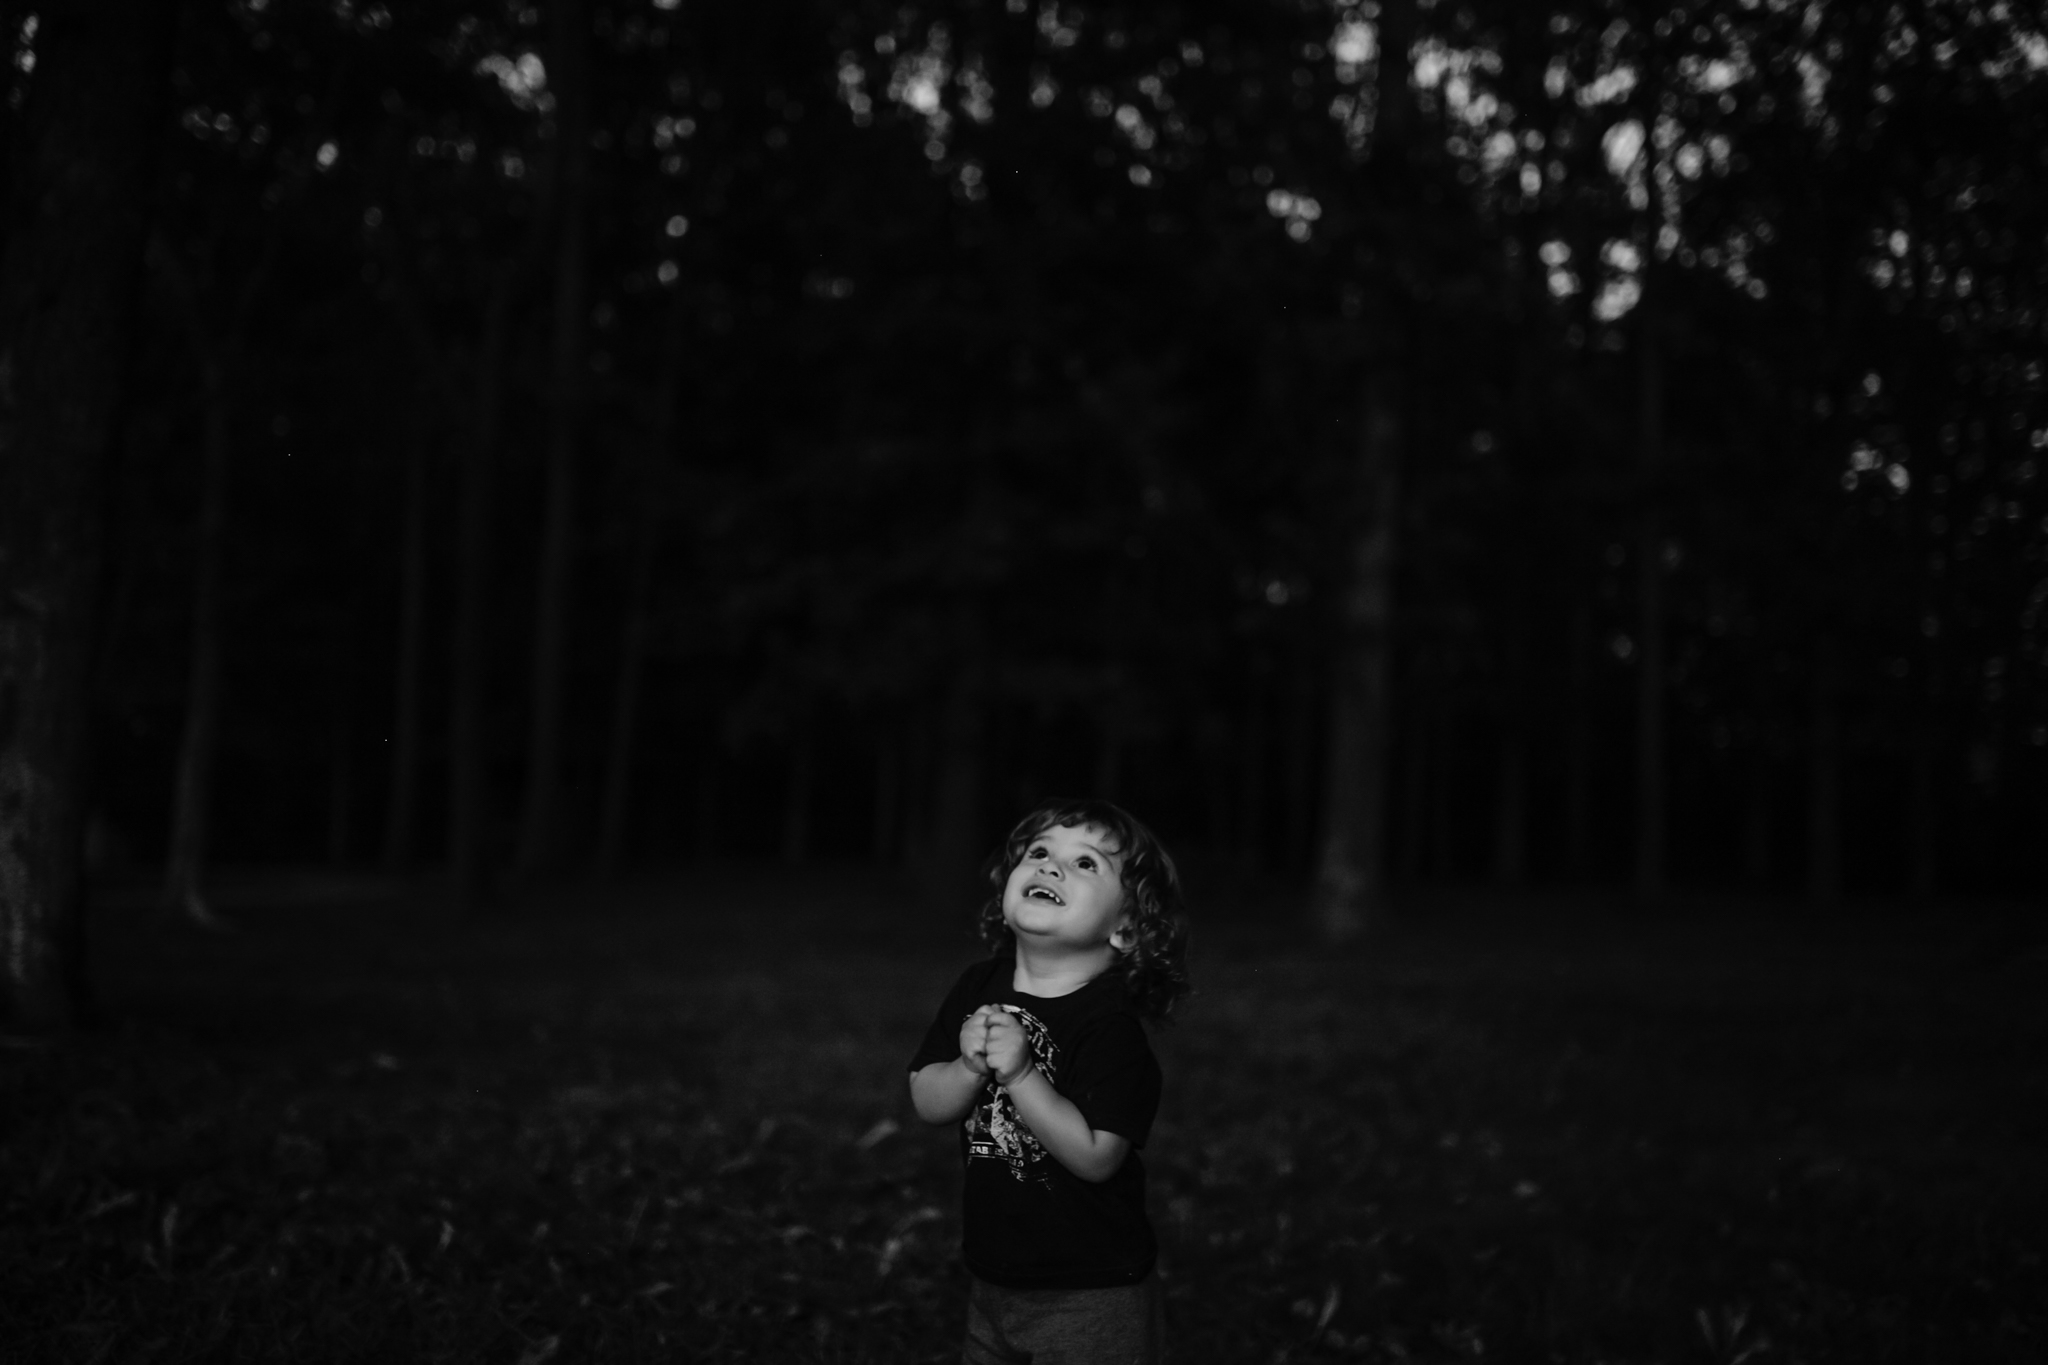 cadance-family-children-photography-6465